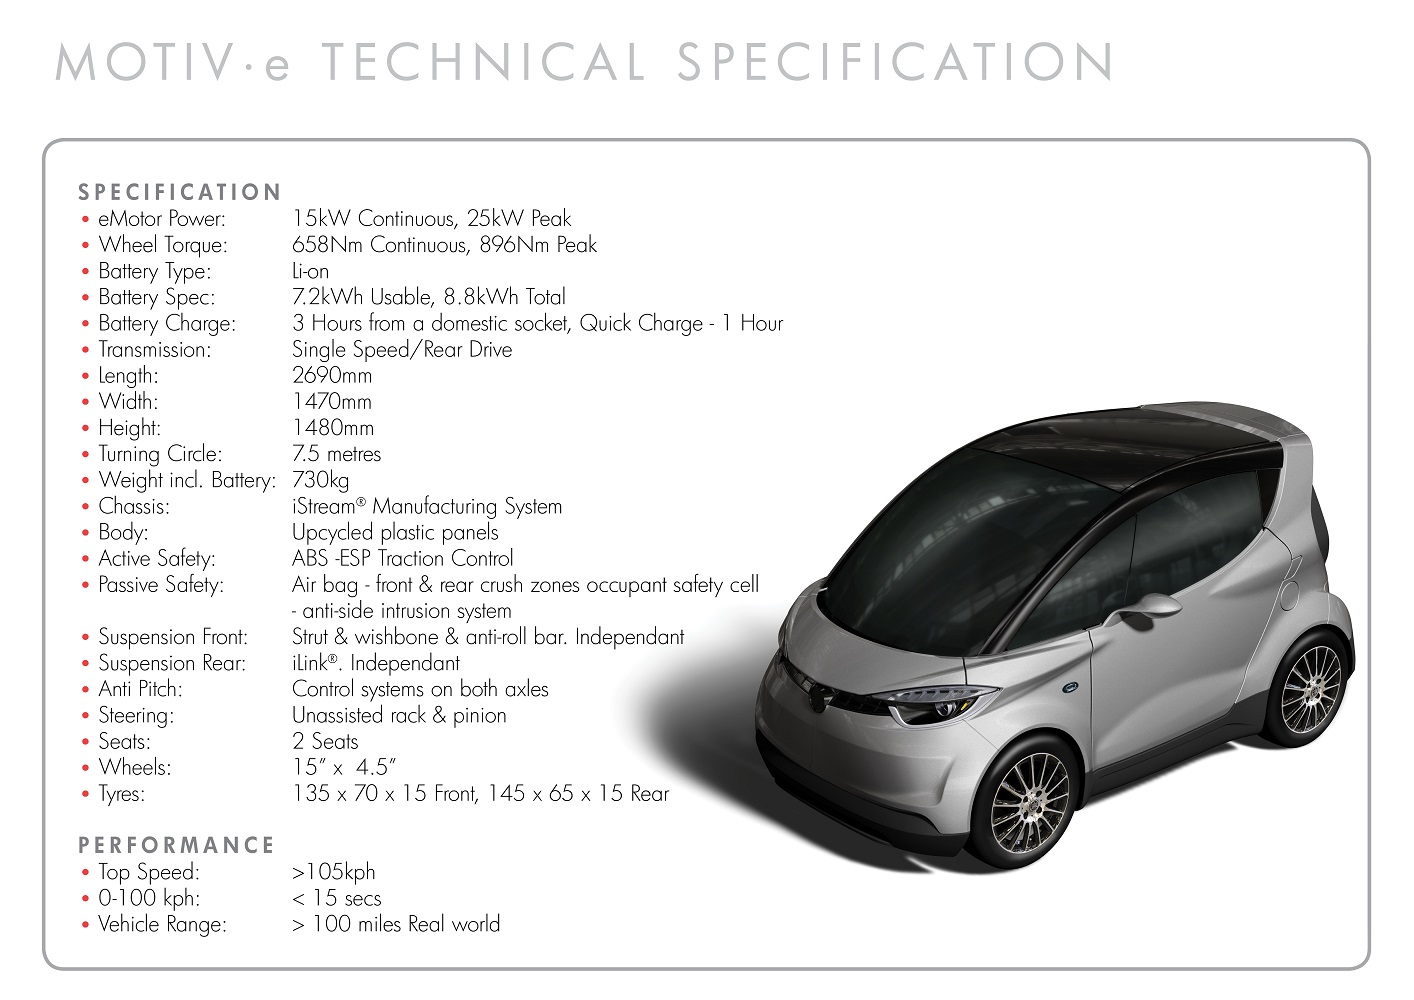 Yamaha MOTIV.e - technical specification